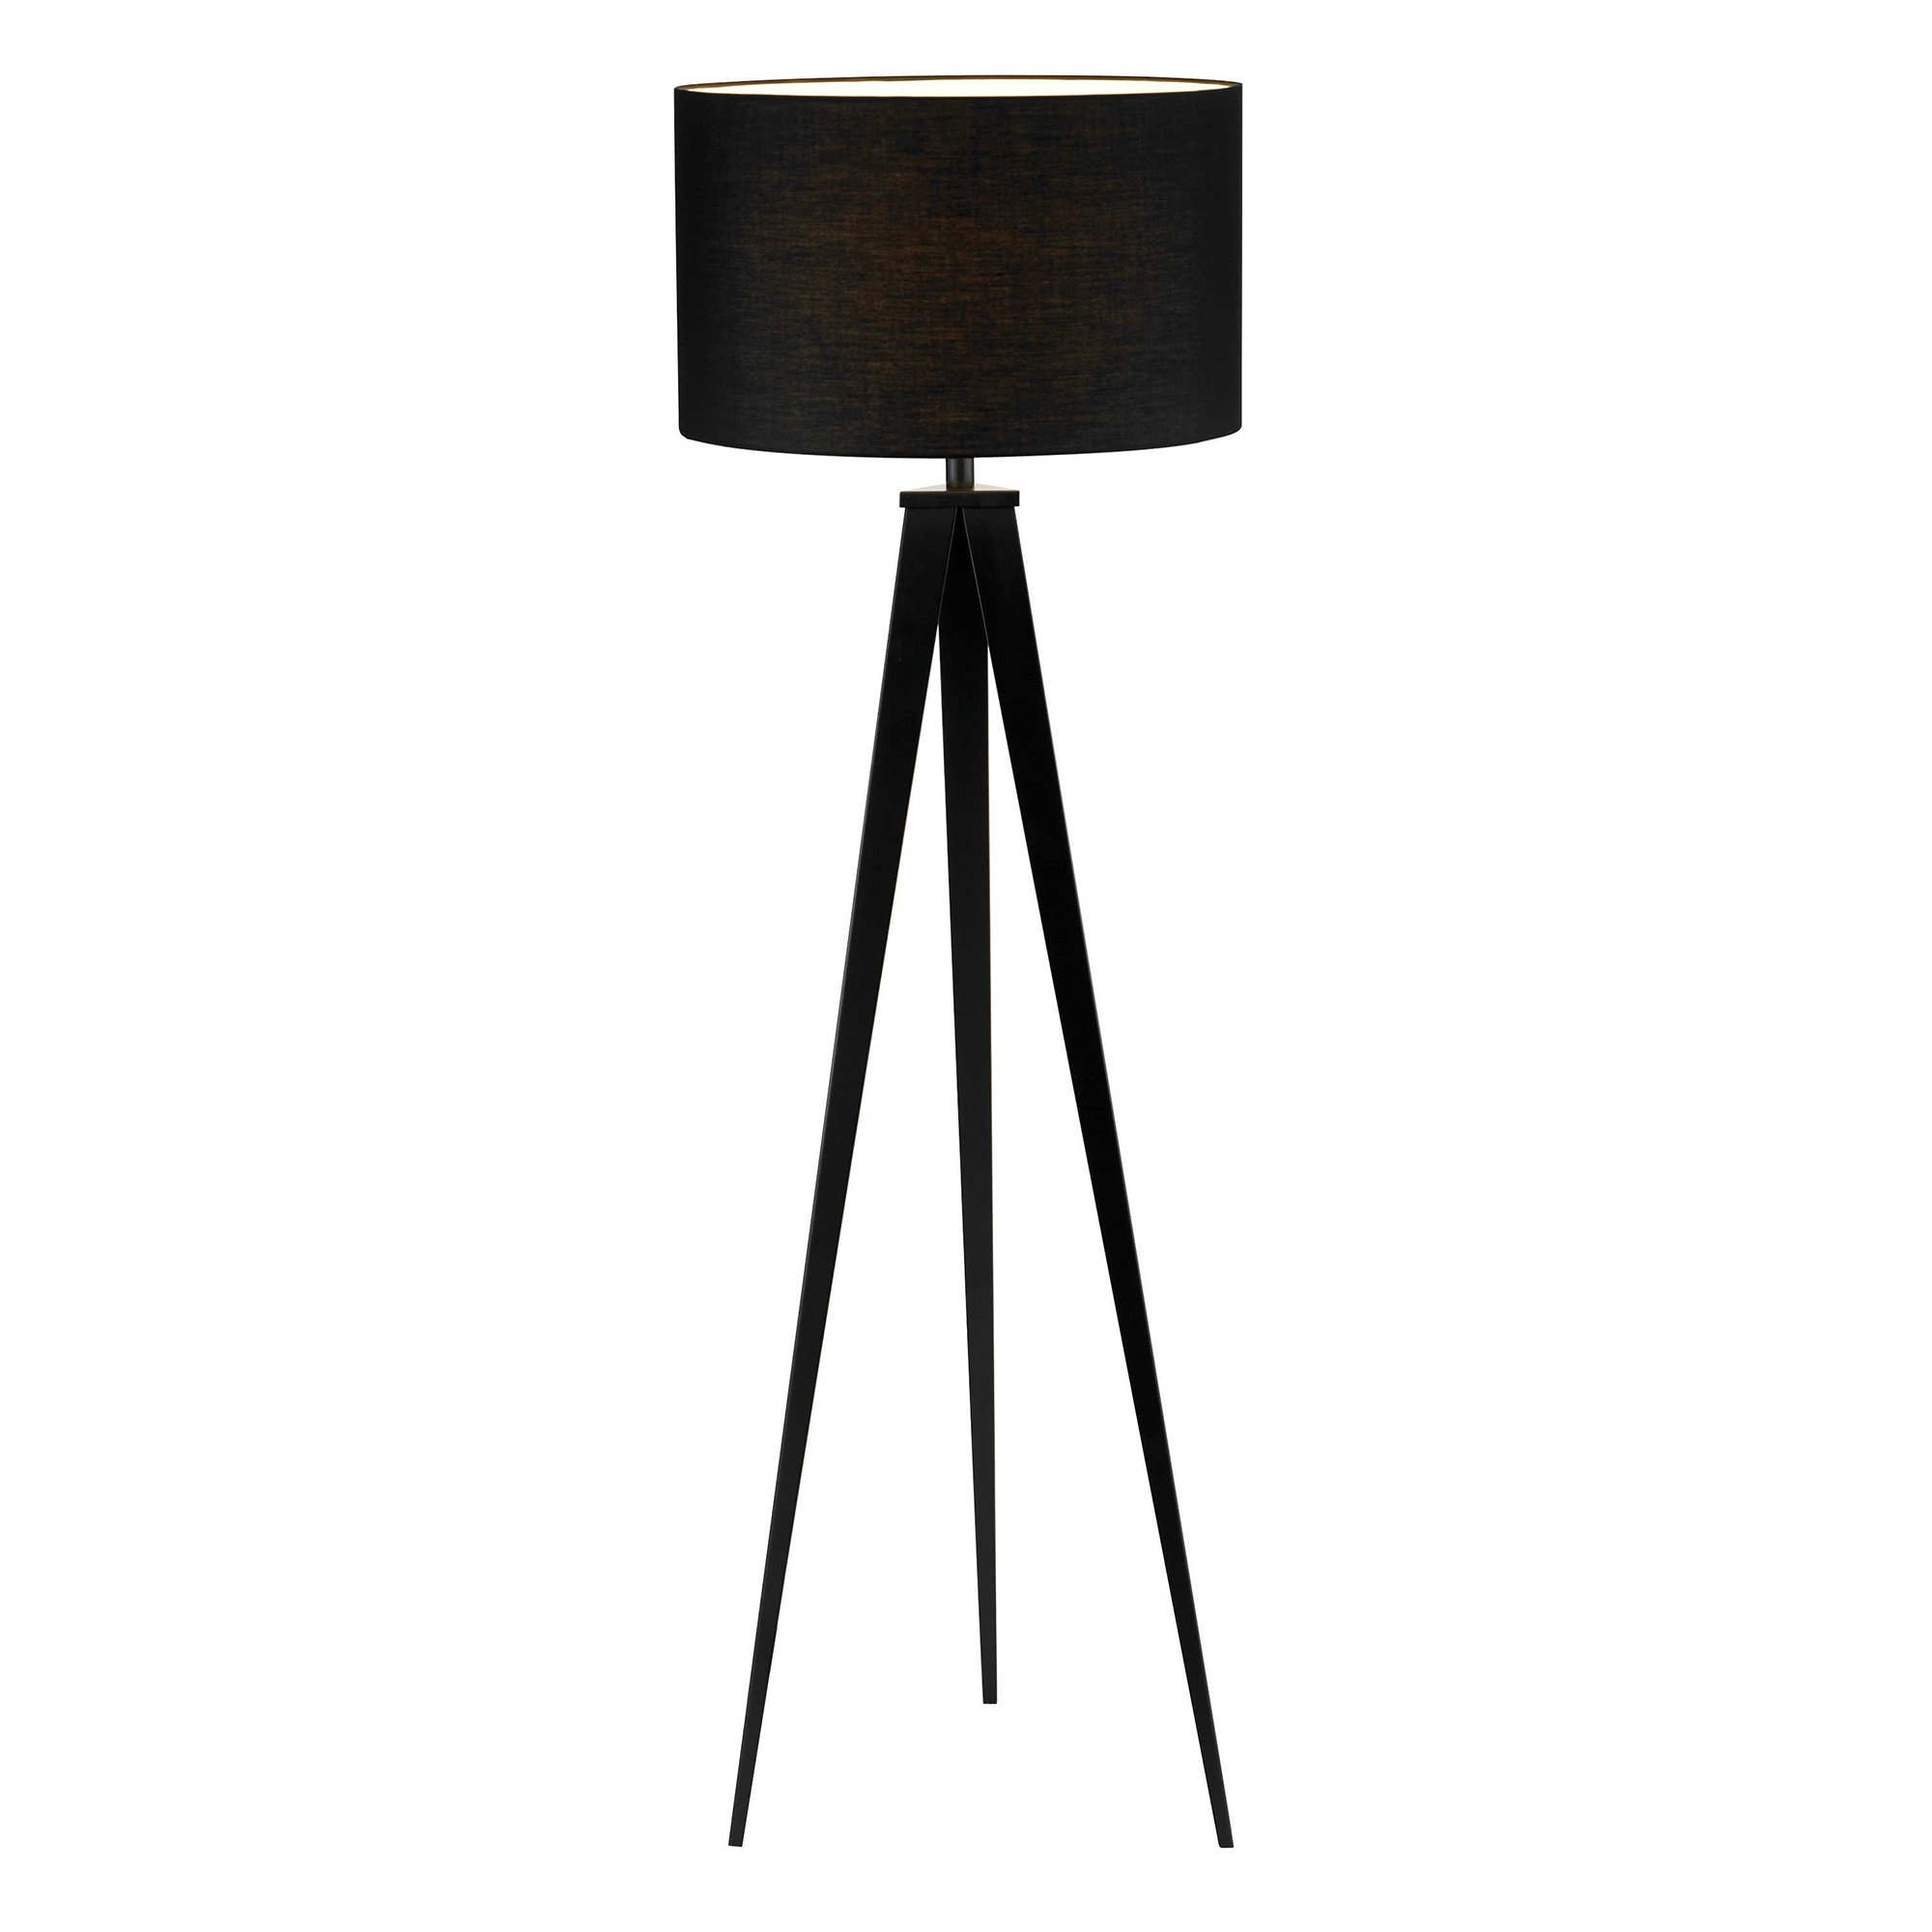 adesso director collection black modern torchiere tripod floor lamp with shade